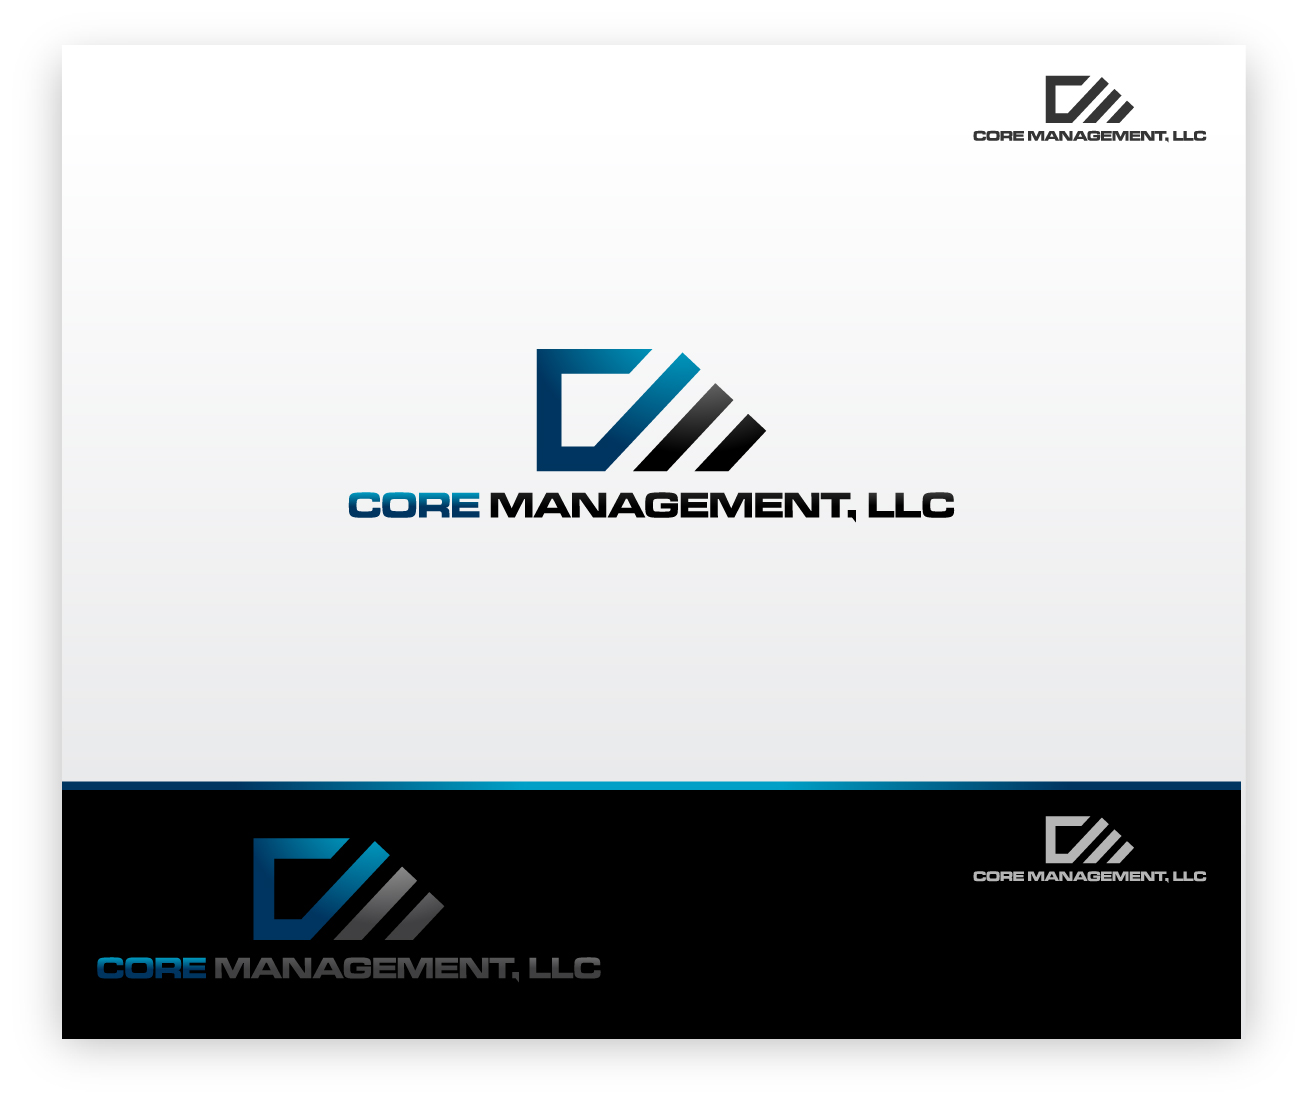 Logo Design by zoiDesign - Entry No. 4 in the Logo Design Contest Creative Logo Design for CORE Management, LLC.